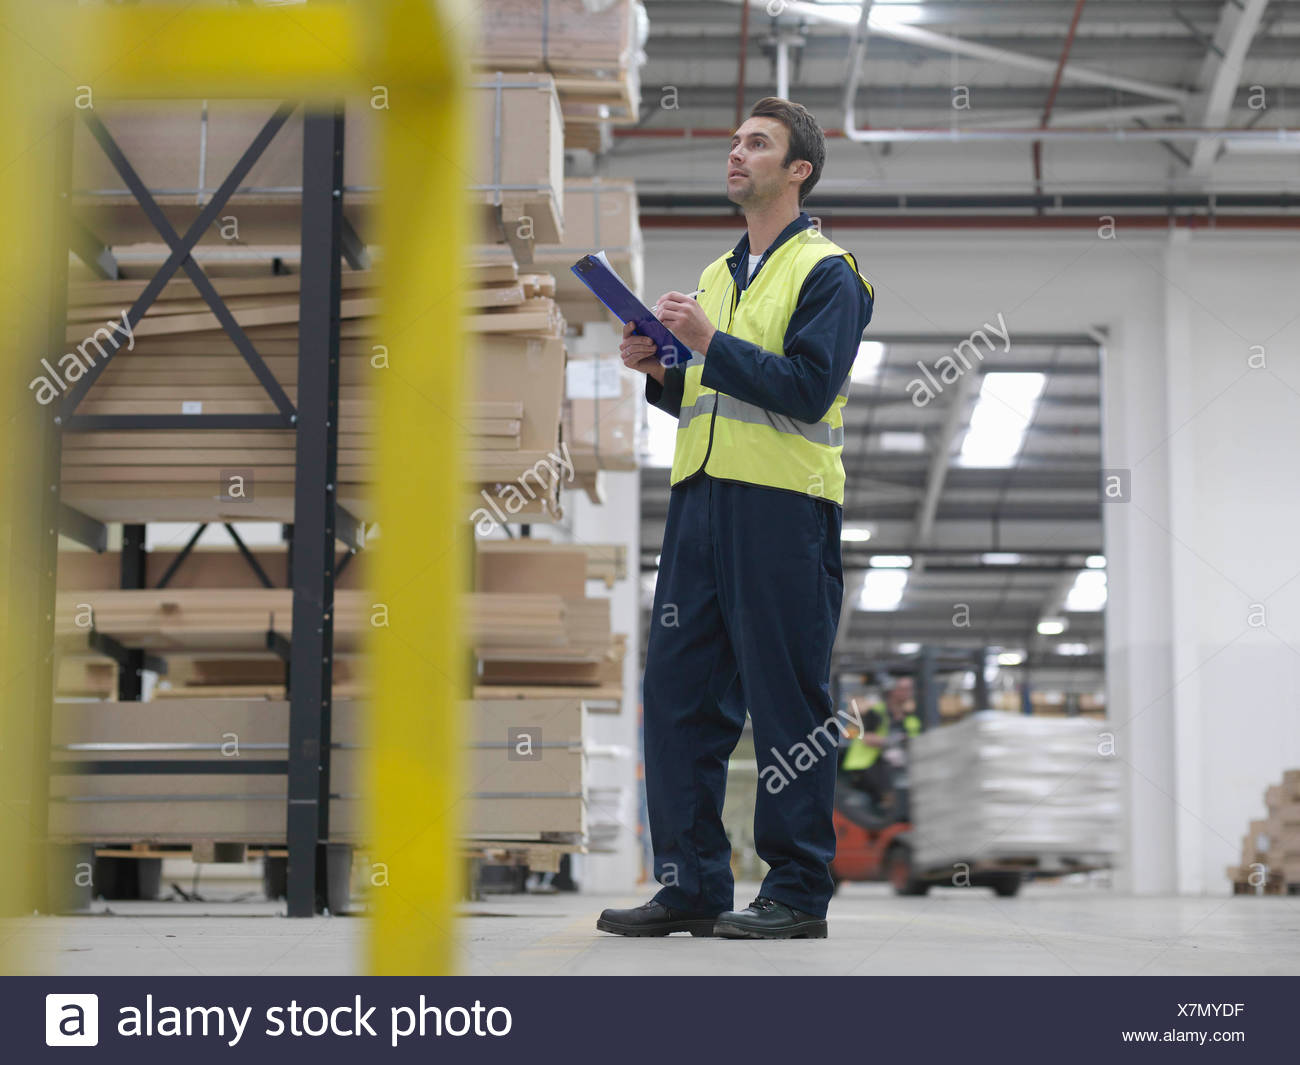 Worker With Clipboard In Warehouse - Stock Image